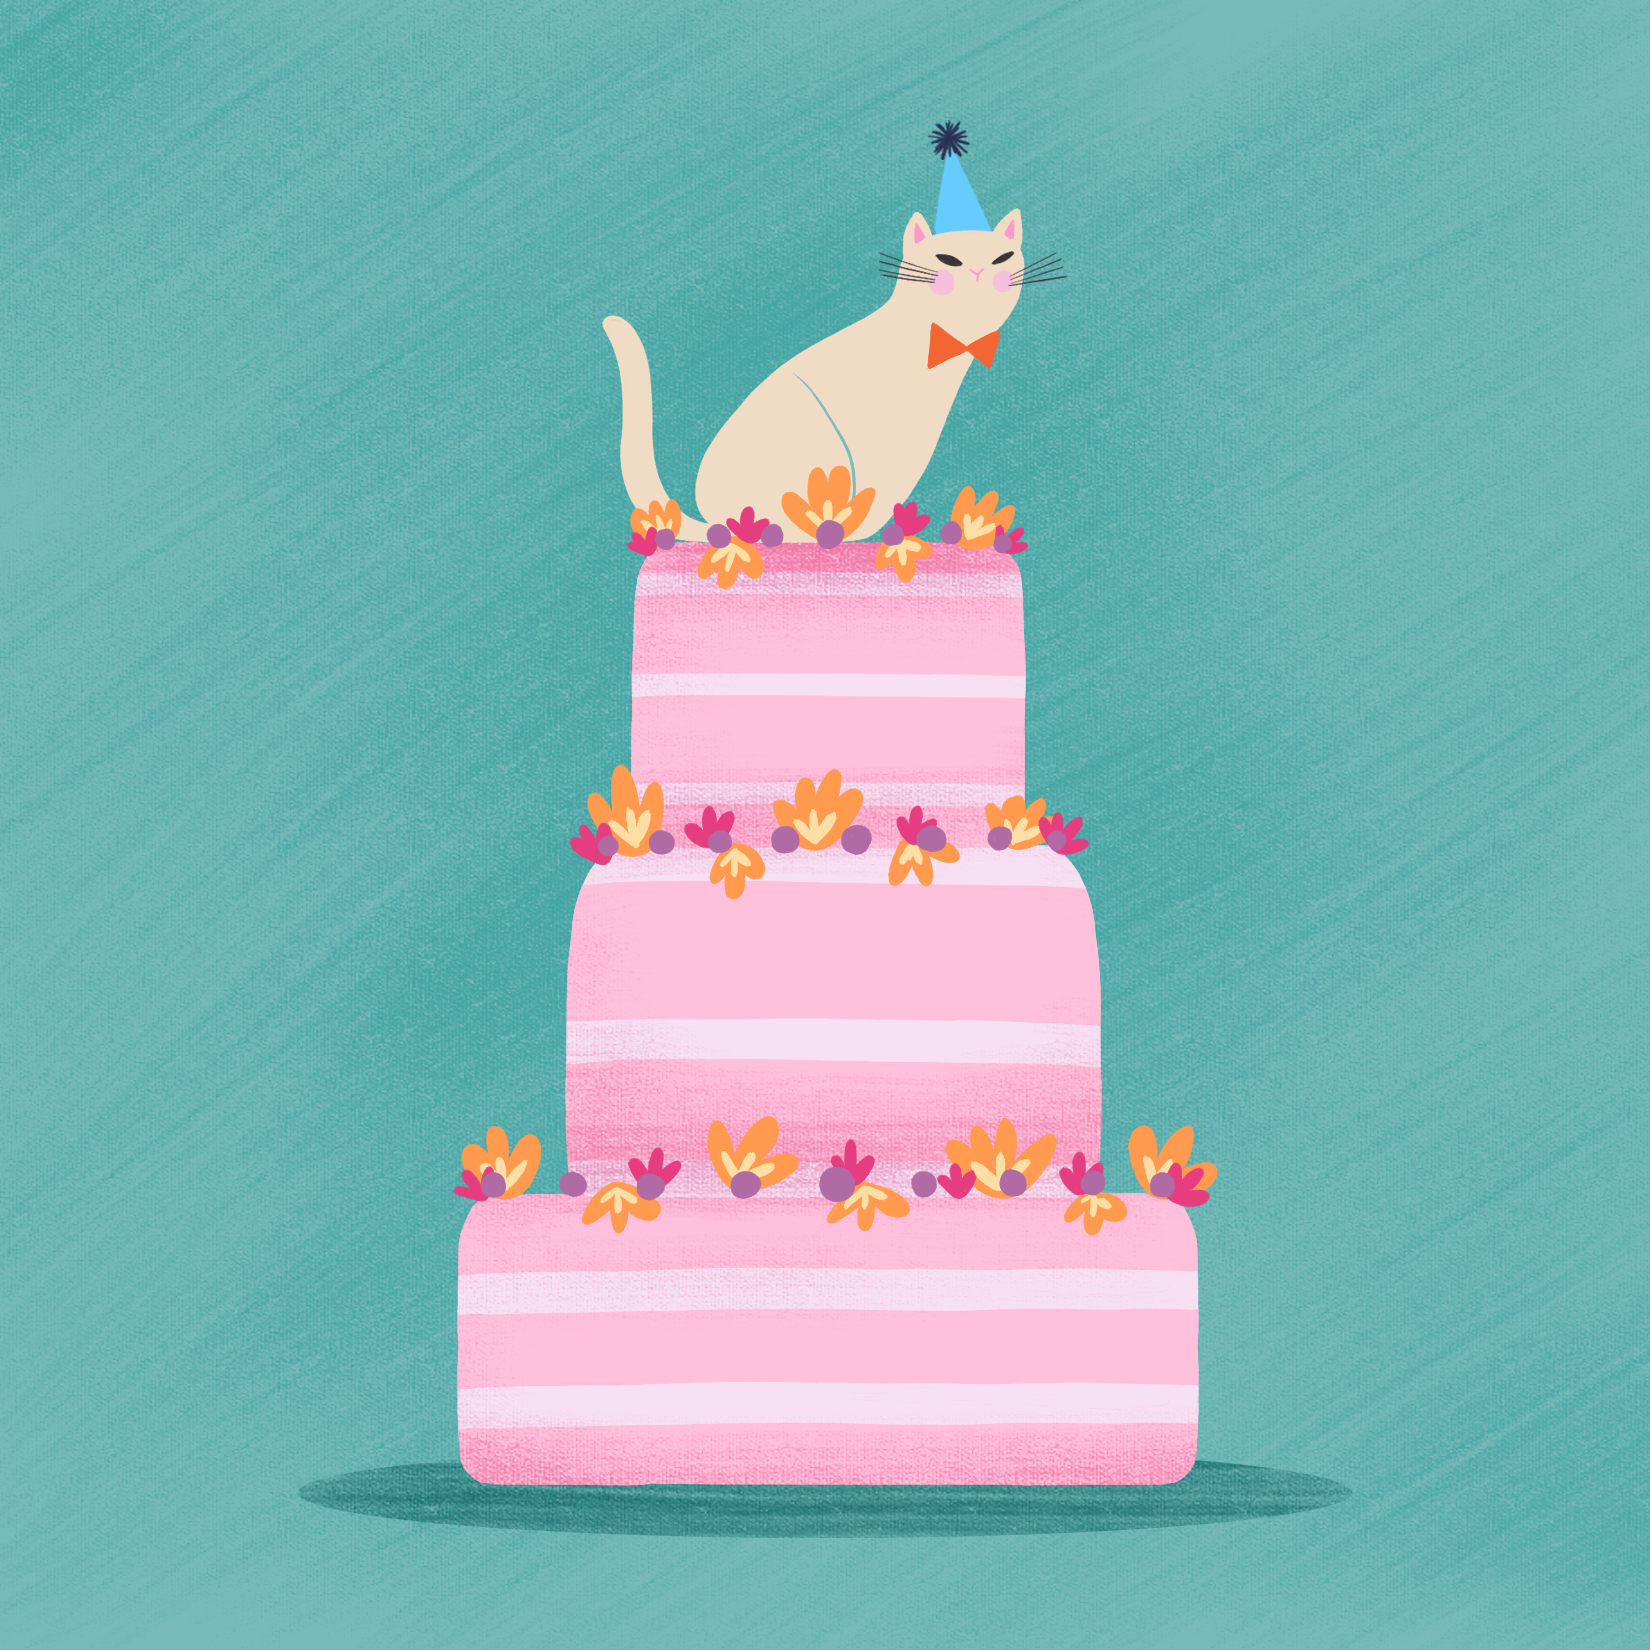 kitty gurl birthday card 2